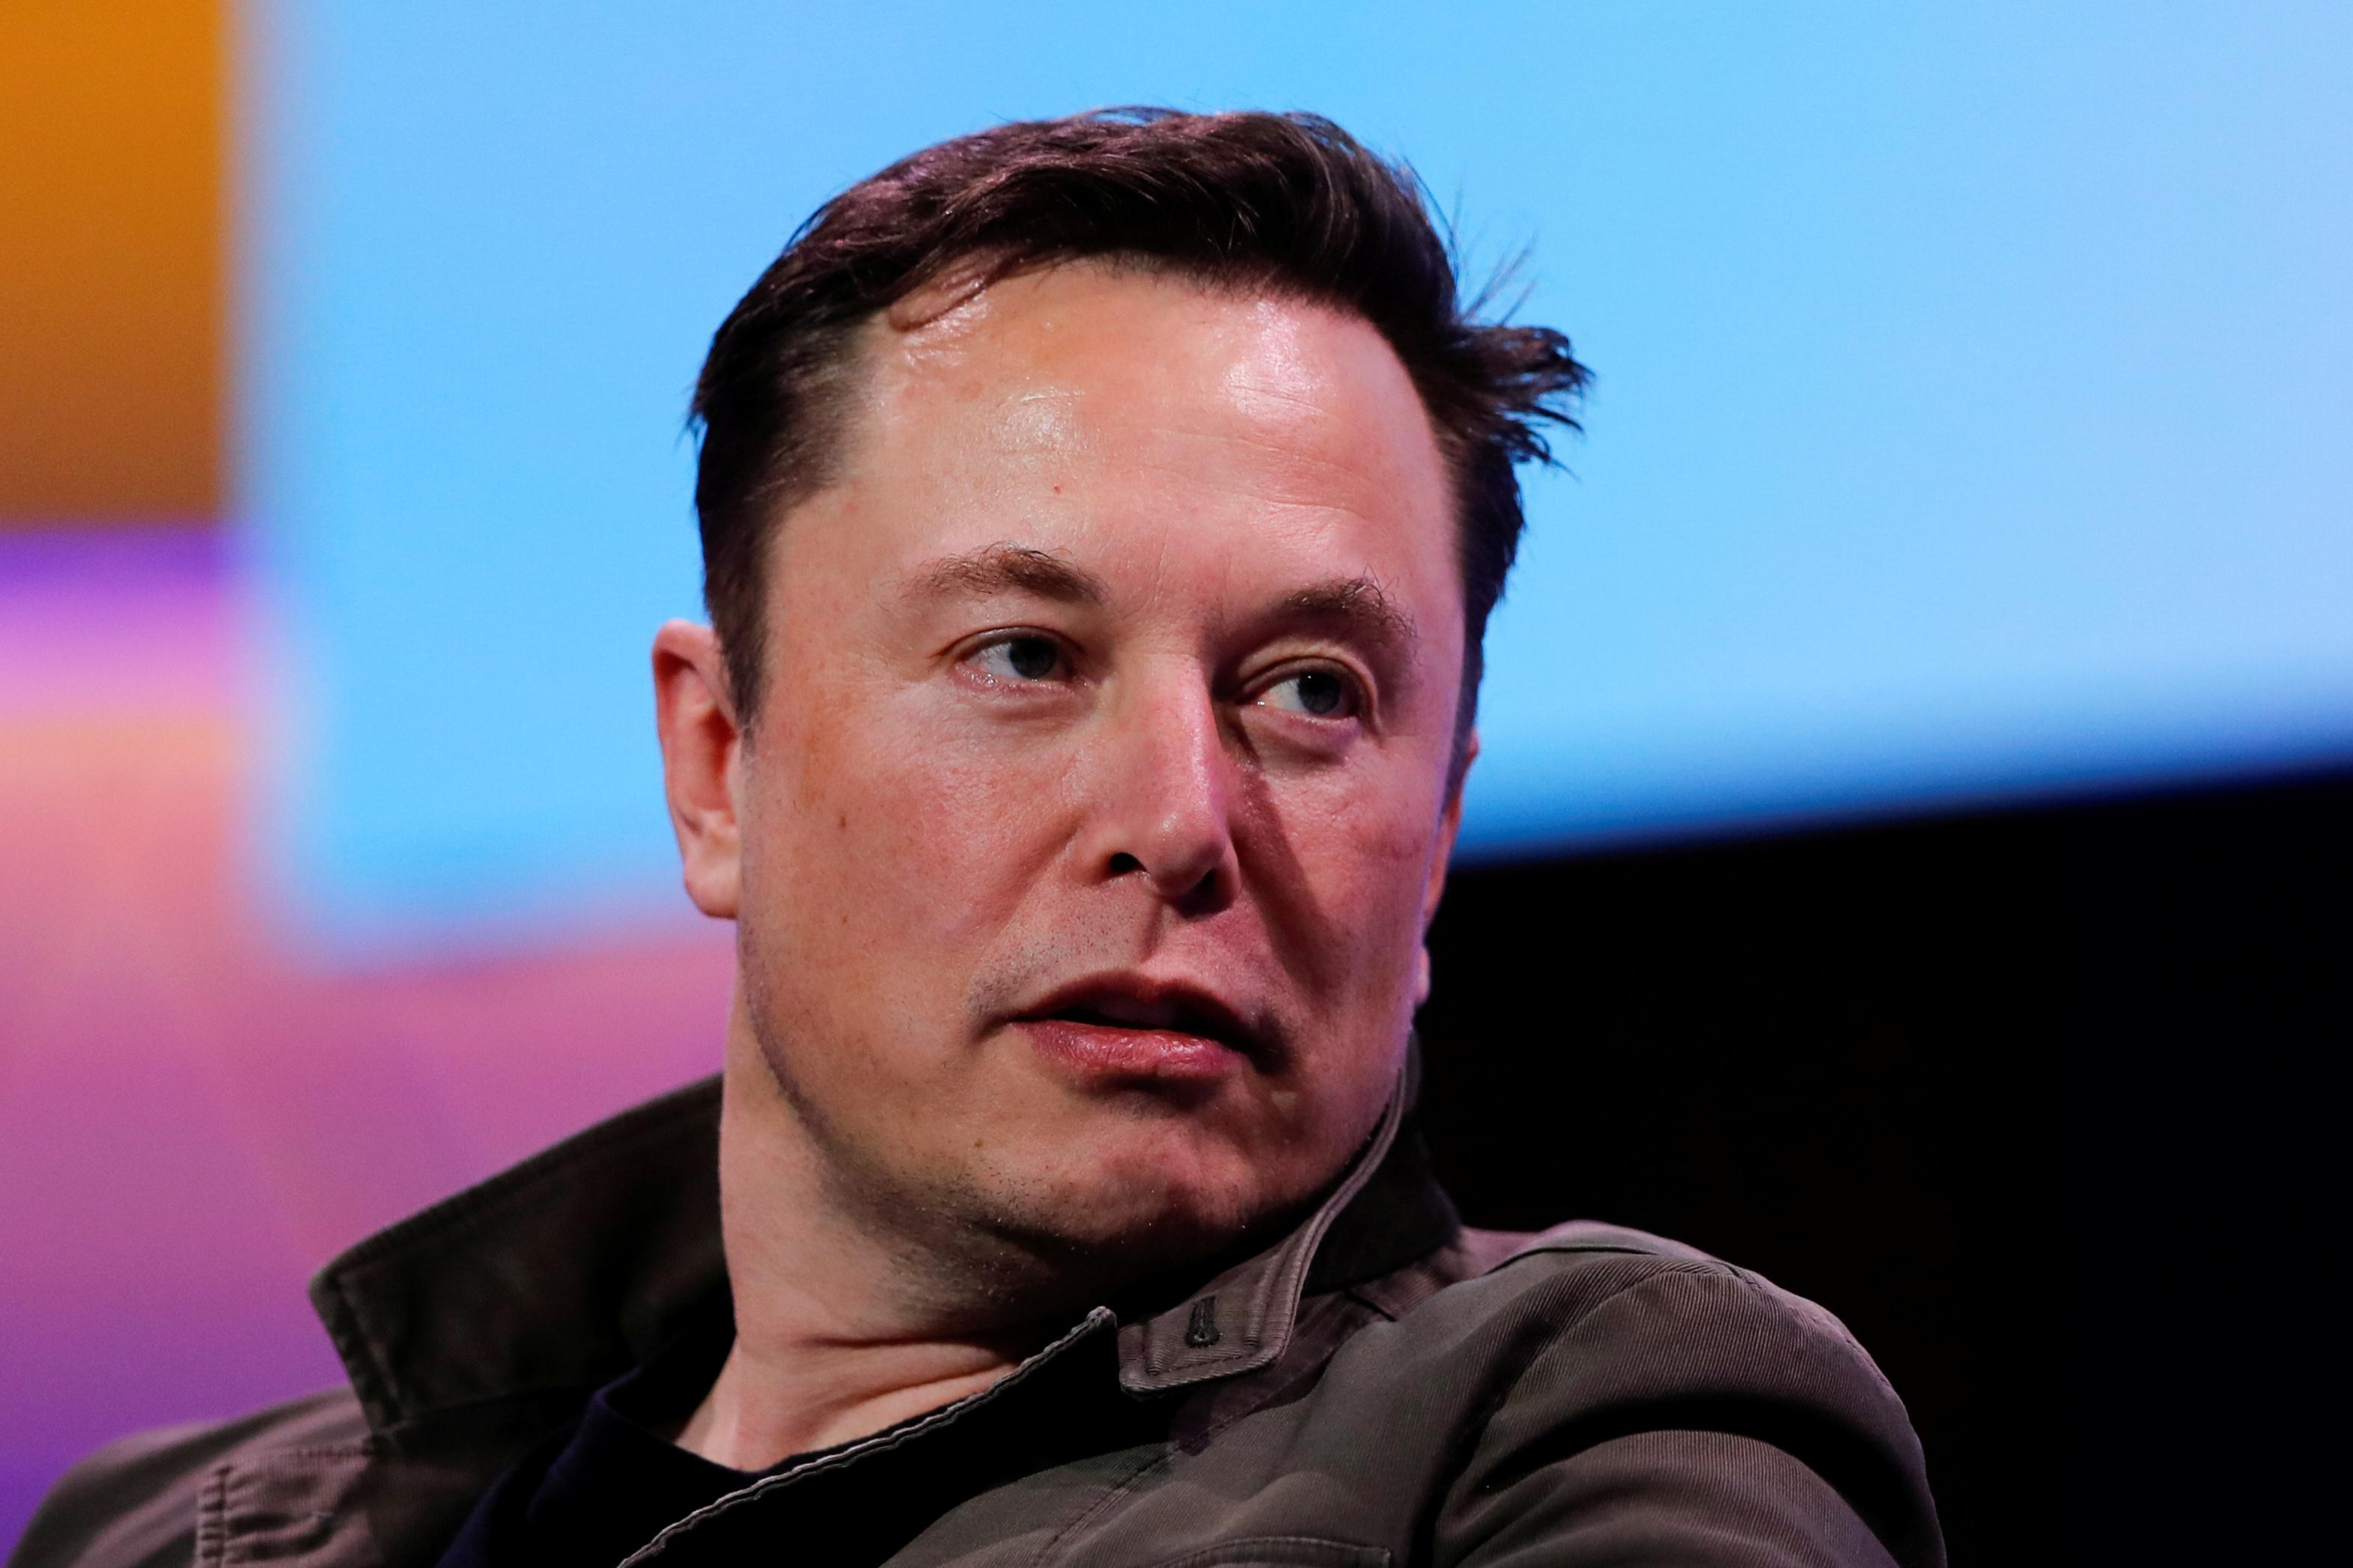 Tesla boss Elon Musk wins defamation trial over his 'pedo guy' tweet